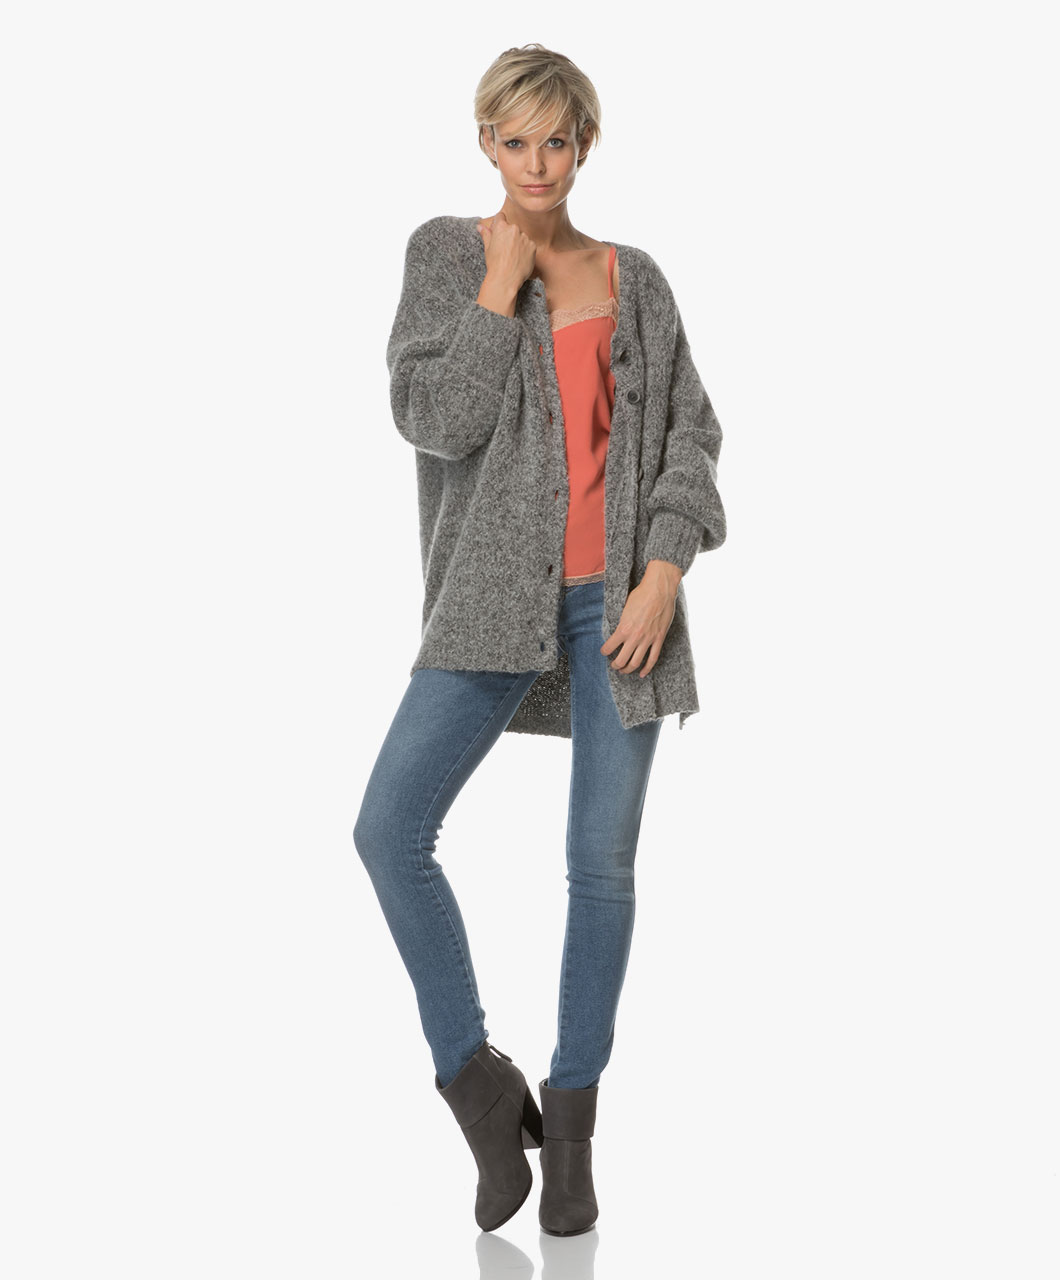 le dernier c4293 8ad5a Shop the look - Slouchy comfort | Perfectly Basics